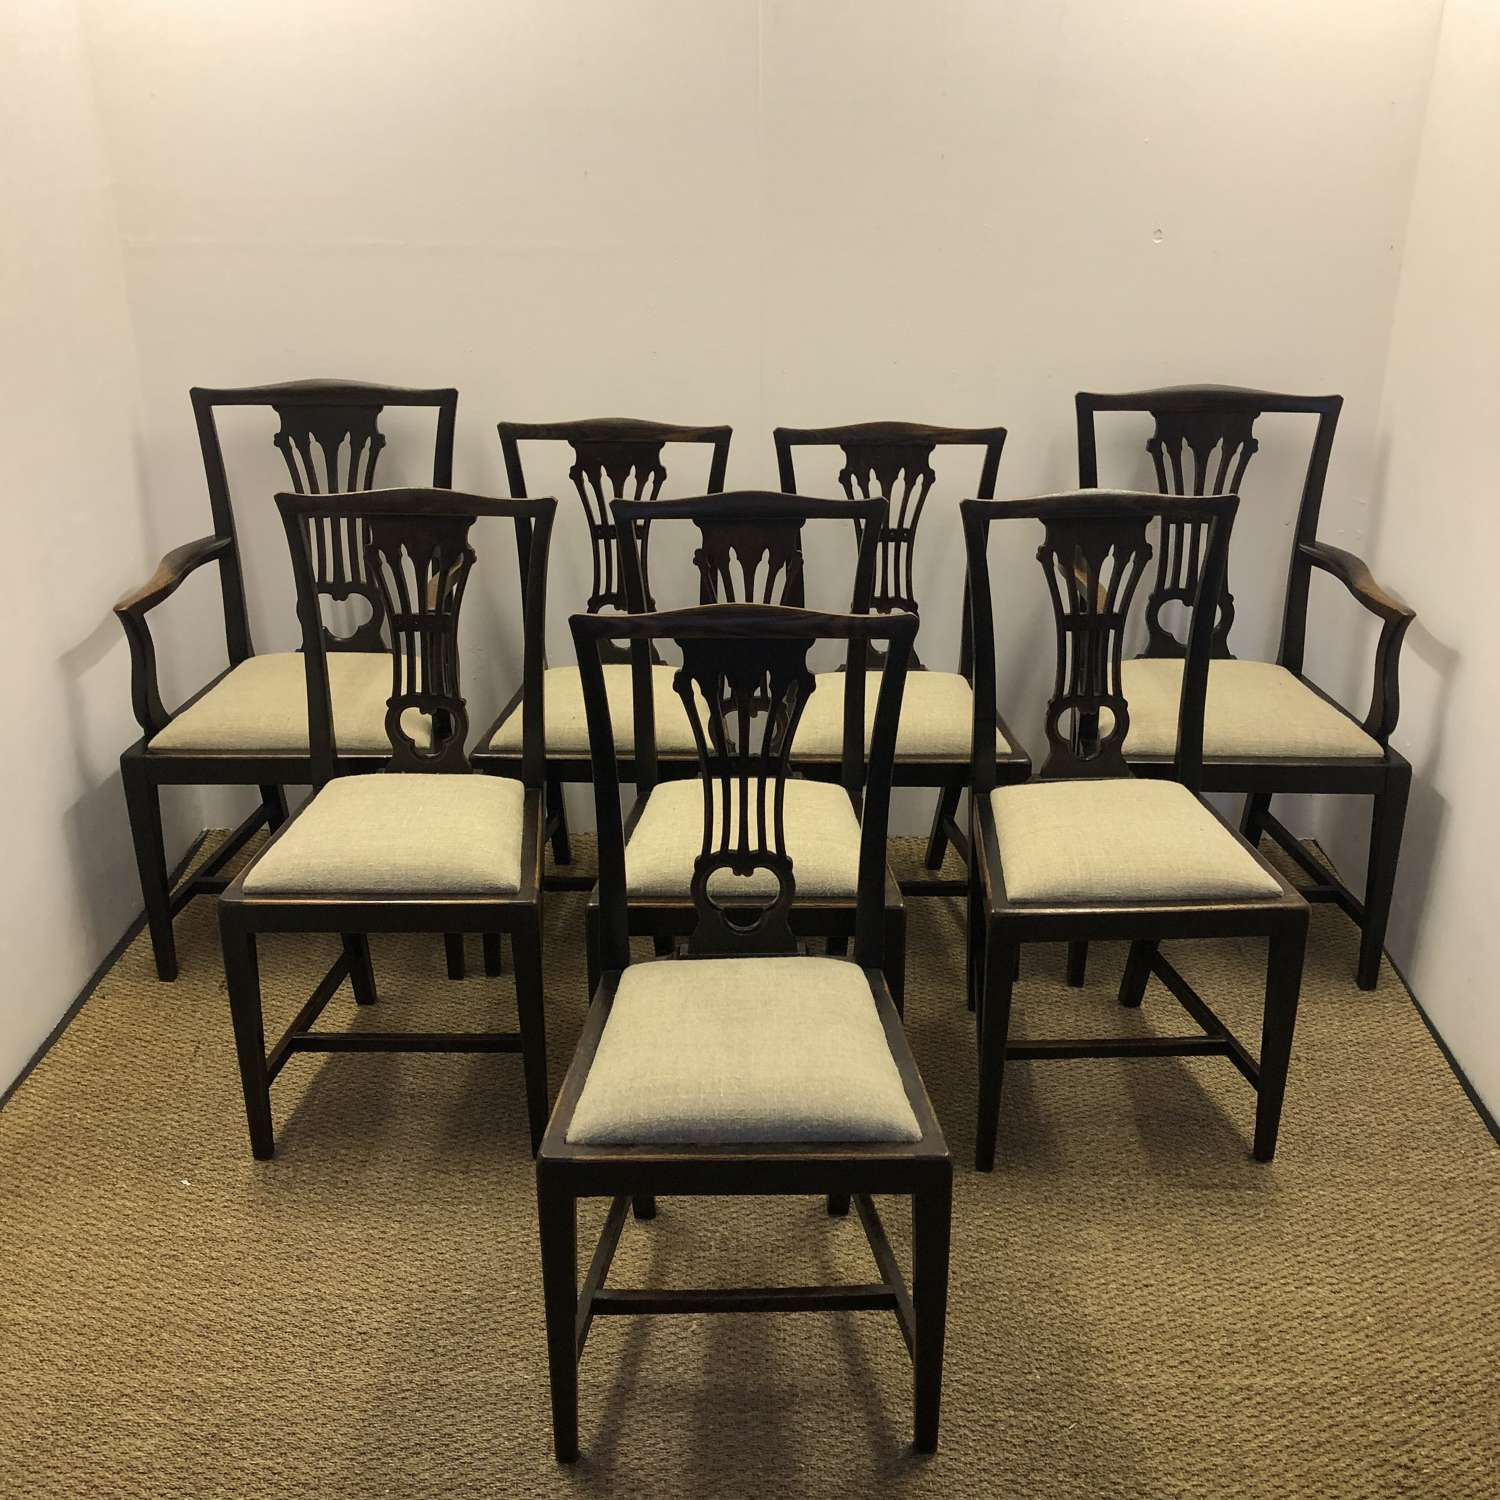 A set of Country Dining Chairs